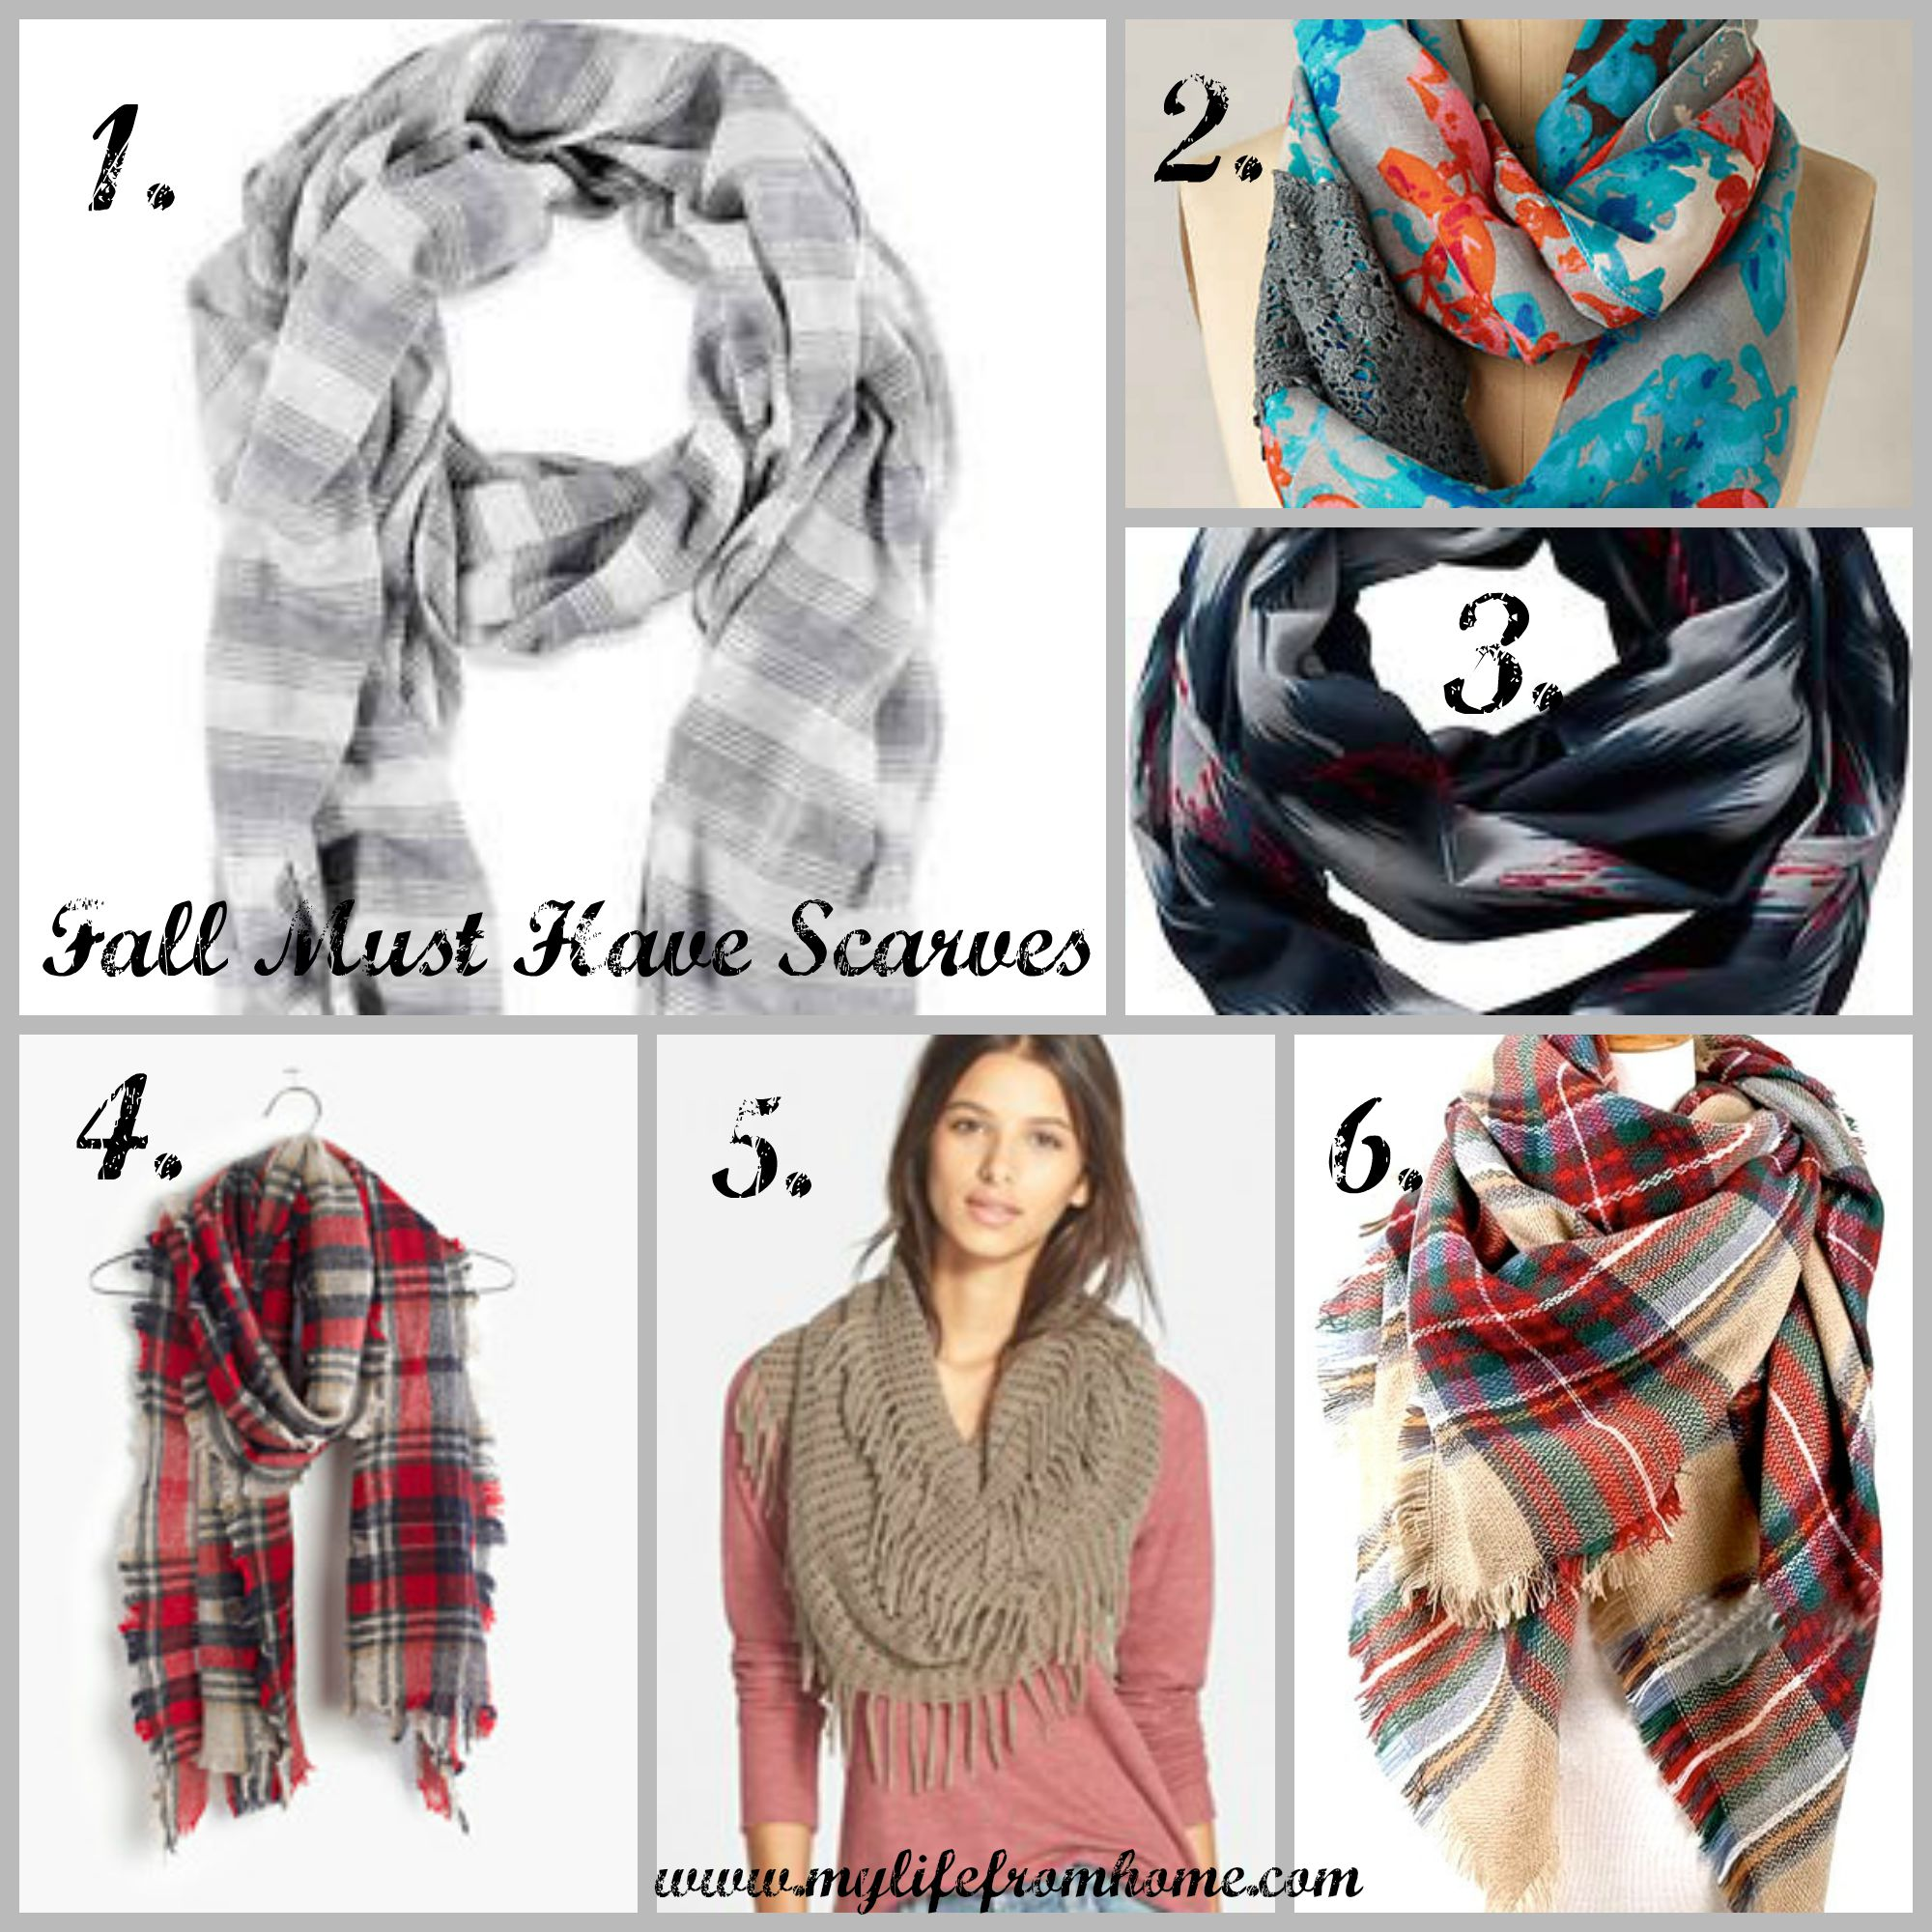 Fall Must Have Scarves by www.mylifefromhome.com